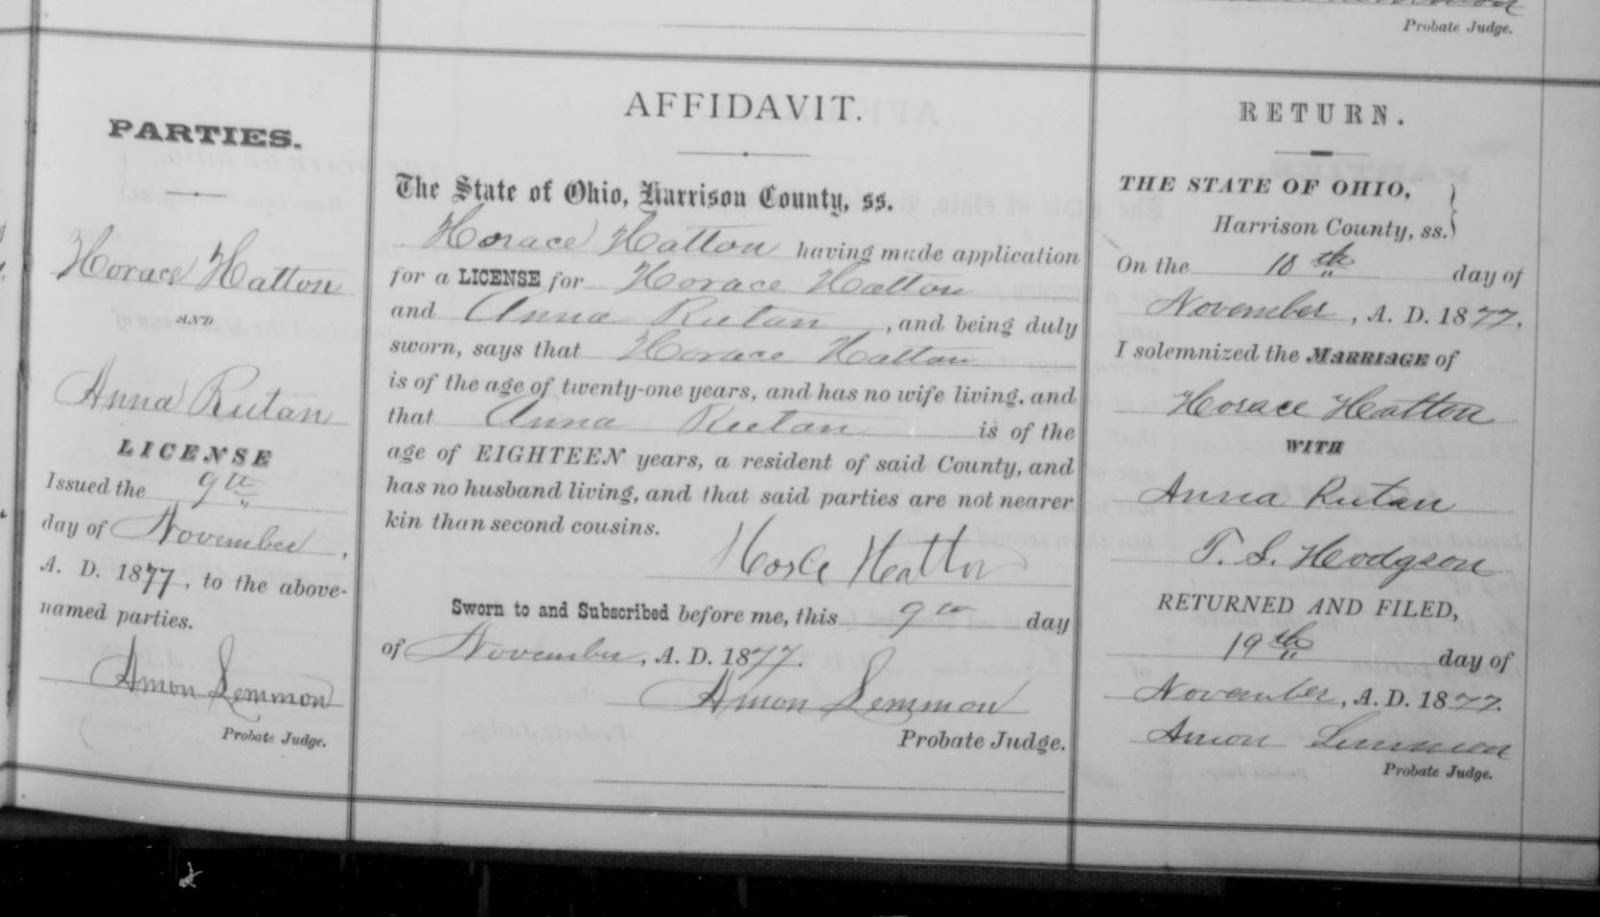 Family history how dna helped find the parents of william houston horace hatton and anna rutan received their marriage license on 7 november 1877 and were married on 10 november 1877 as recorded in ohio county marriages aiddatafo Choice Image